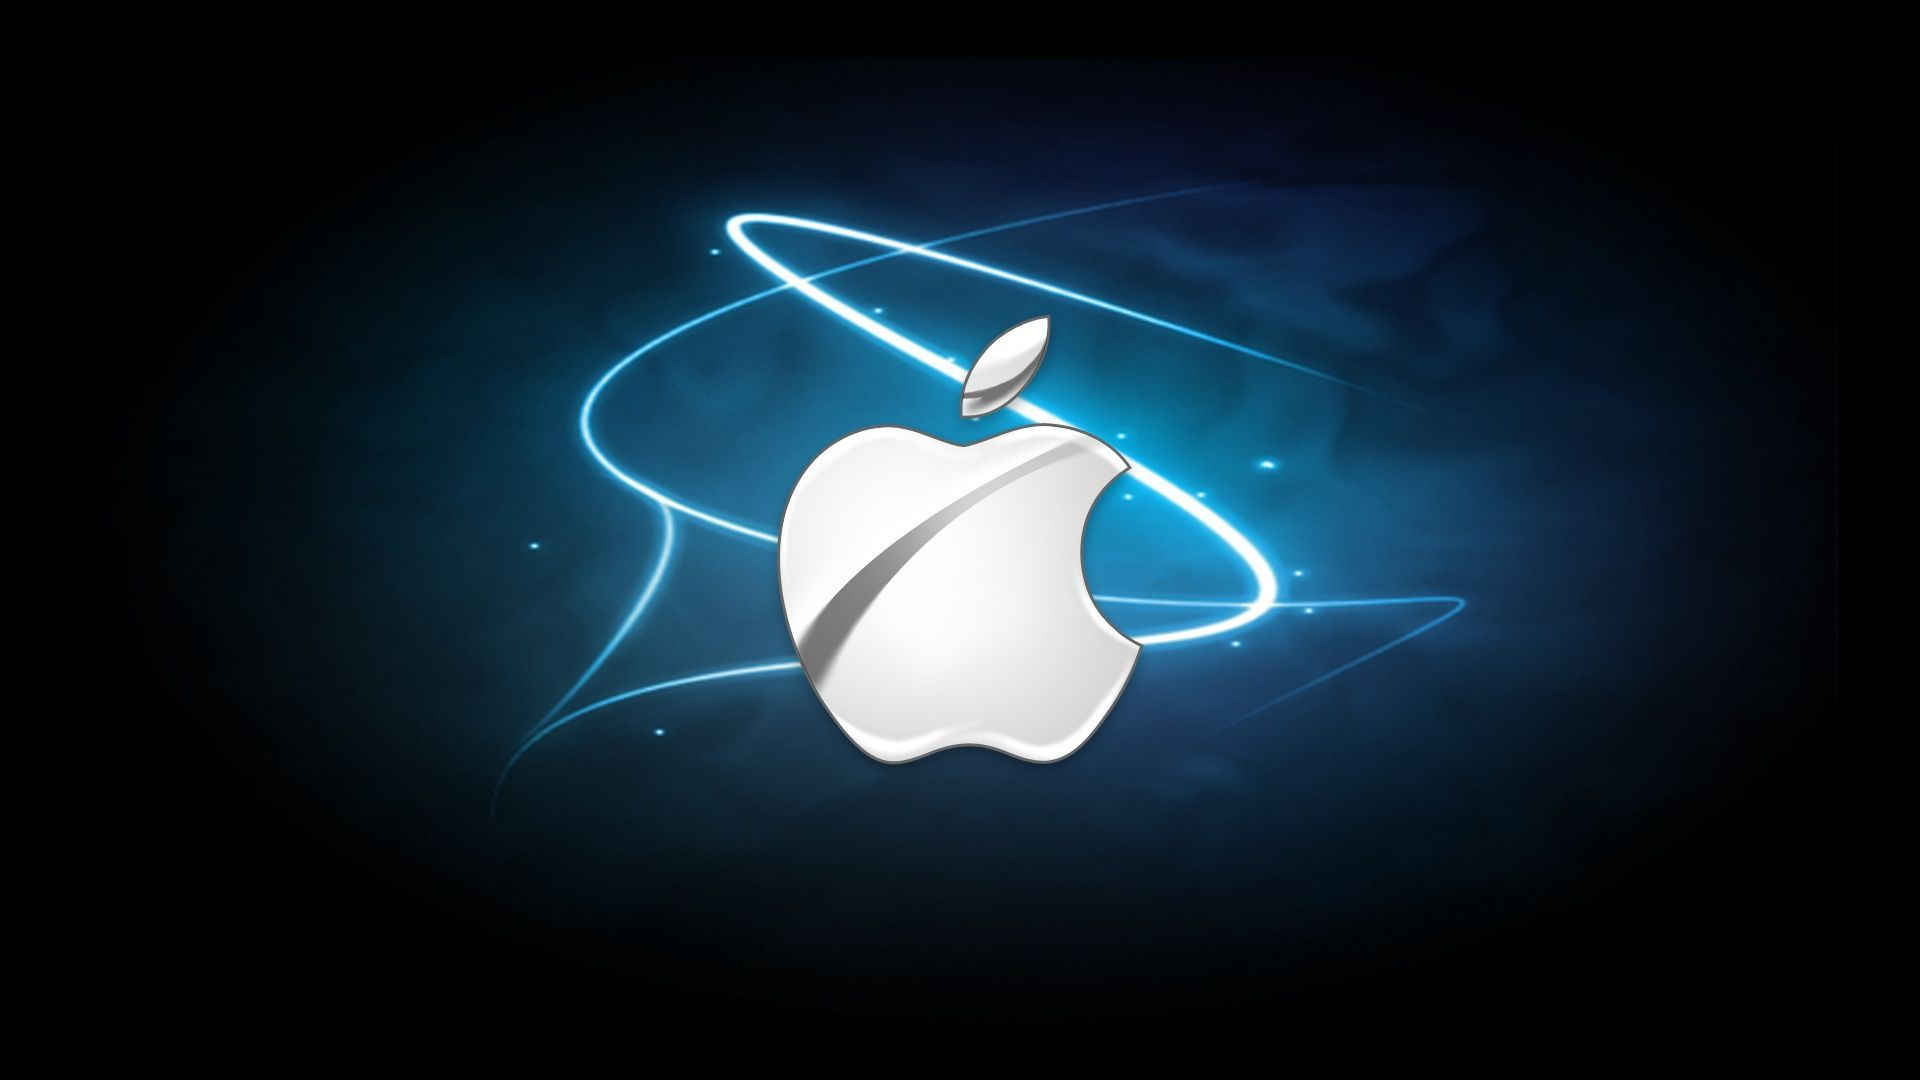 Apple Logo Hd Wallpapers For Iphone 1920 1080 Apple Logo Hd Wallpapers 54 Wallpapers Adorable Apple Logo Wallpaper Logo Wallpaper Hd Hd Apple Wallpapers